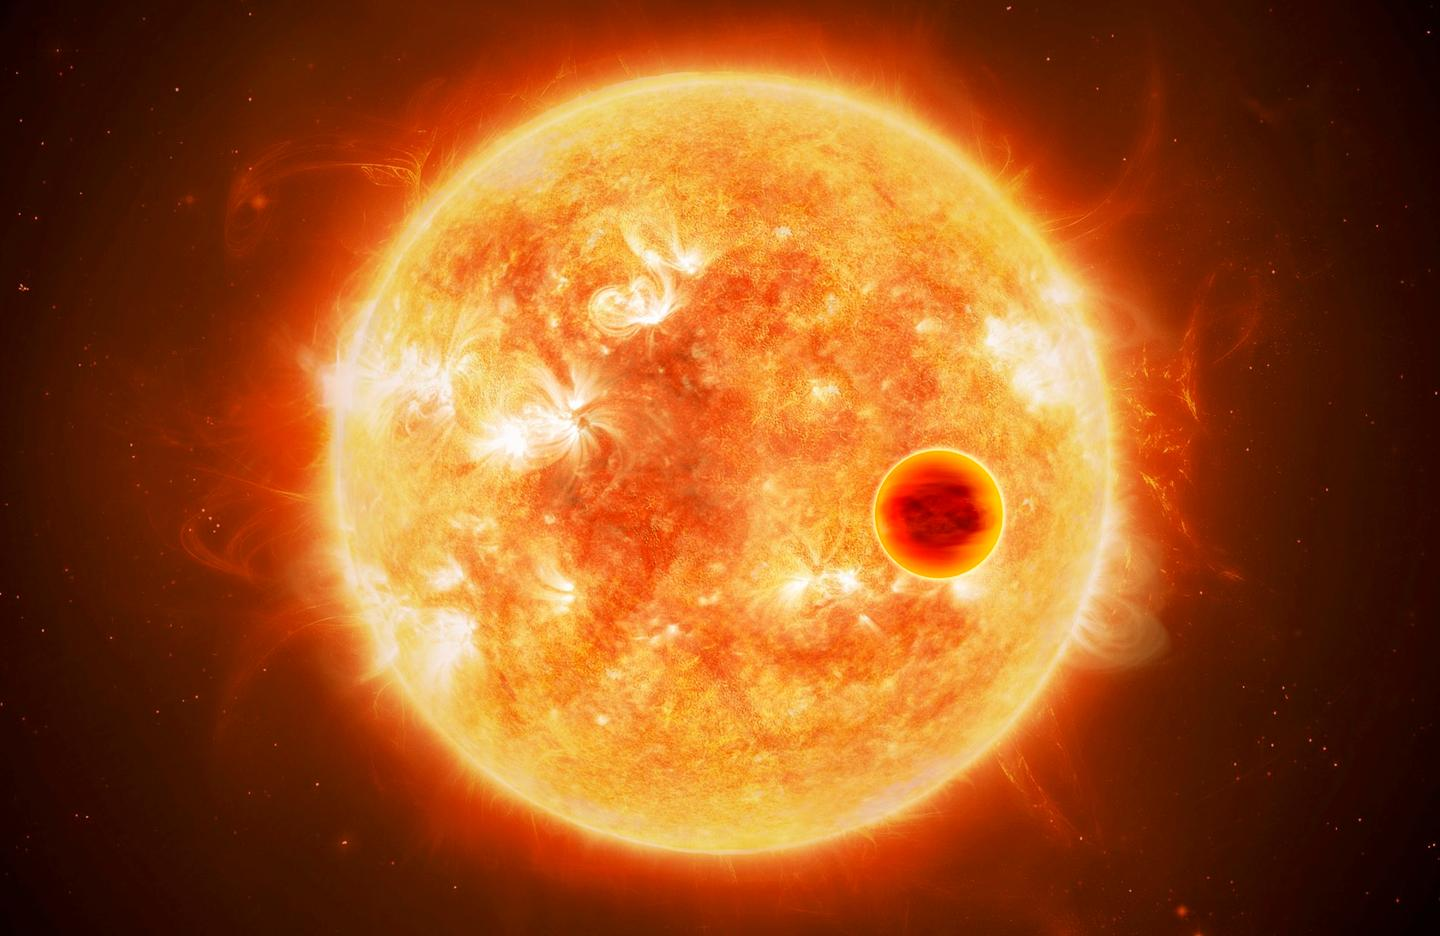 Scientists working on the Ariel mission will look to use a method called transit spectroscopy to learn about the atmospheres of exoplanets